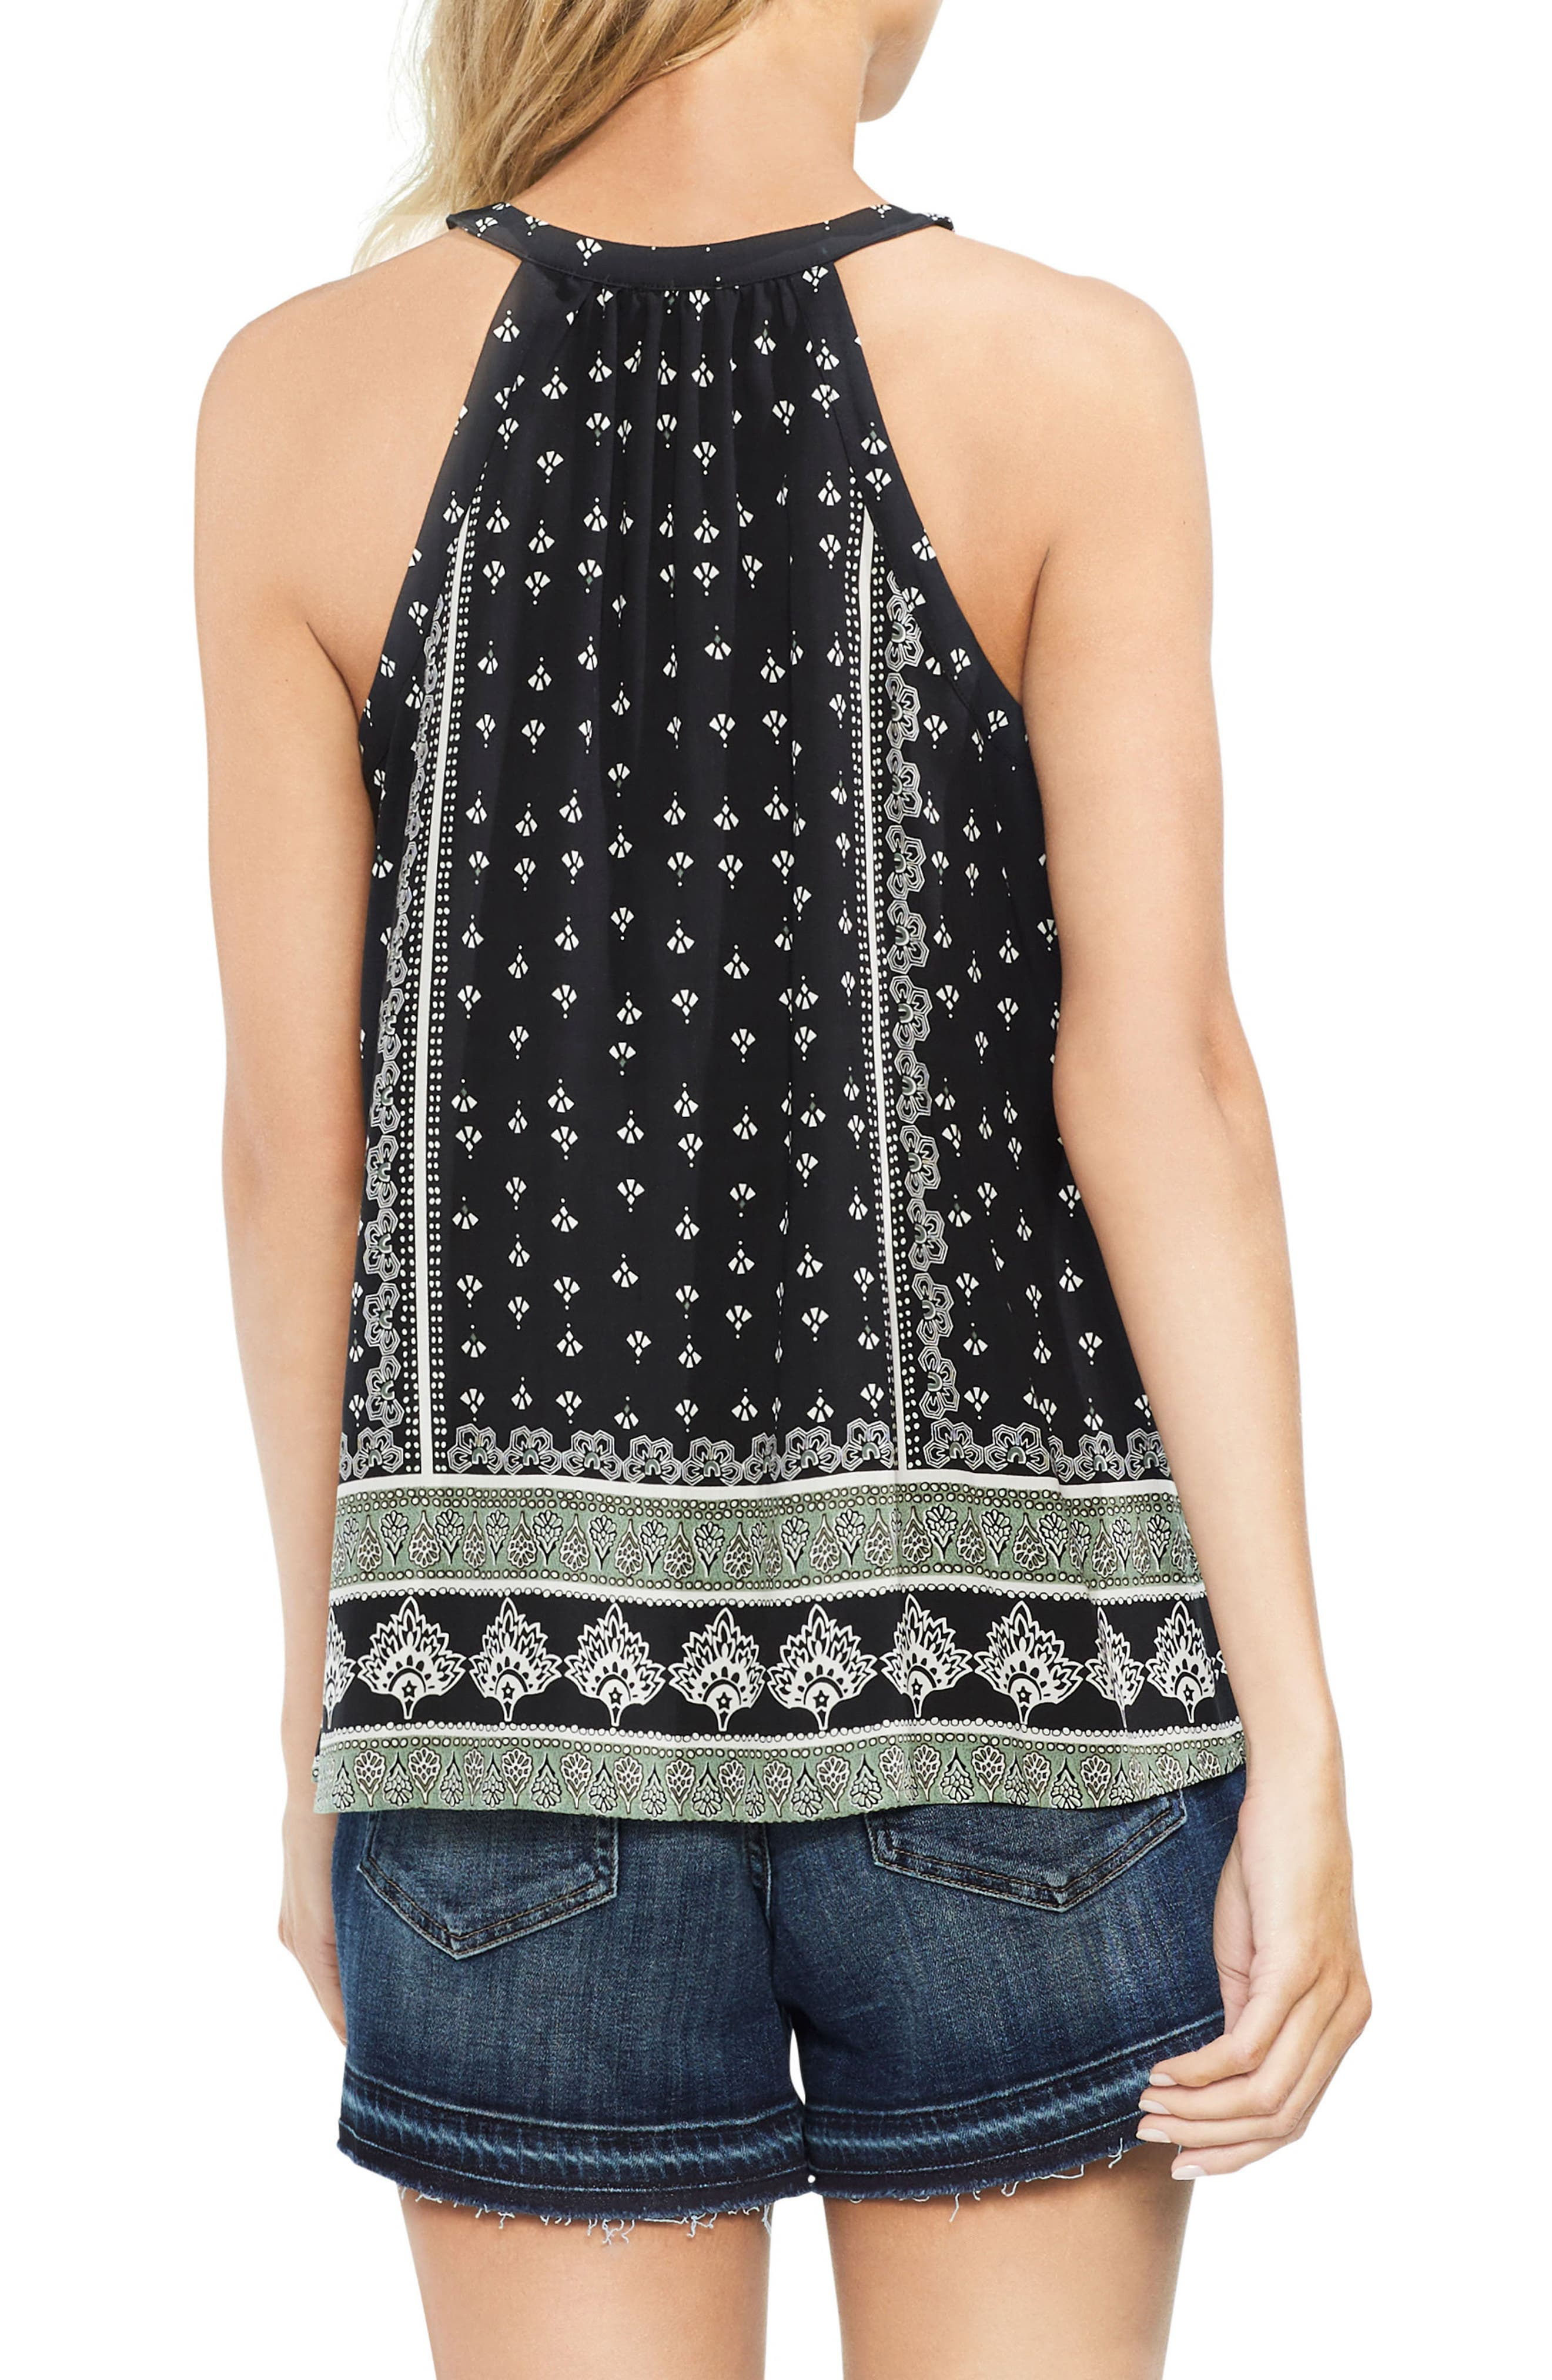 VINCE CAMUTO,                             Halter Style Print Top,                             Alternate thumbnail 2, color,                             001